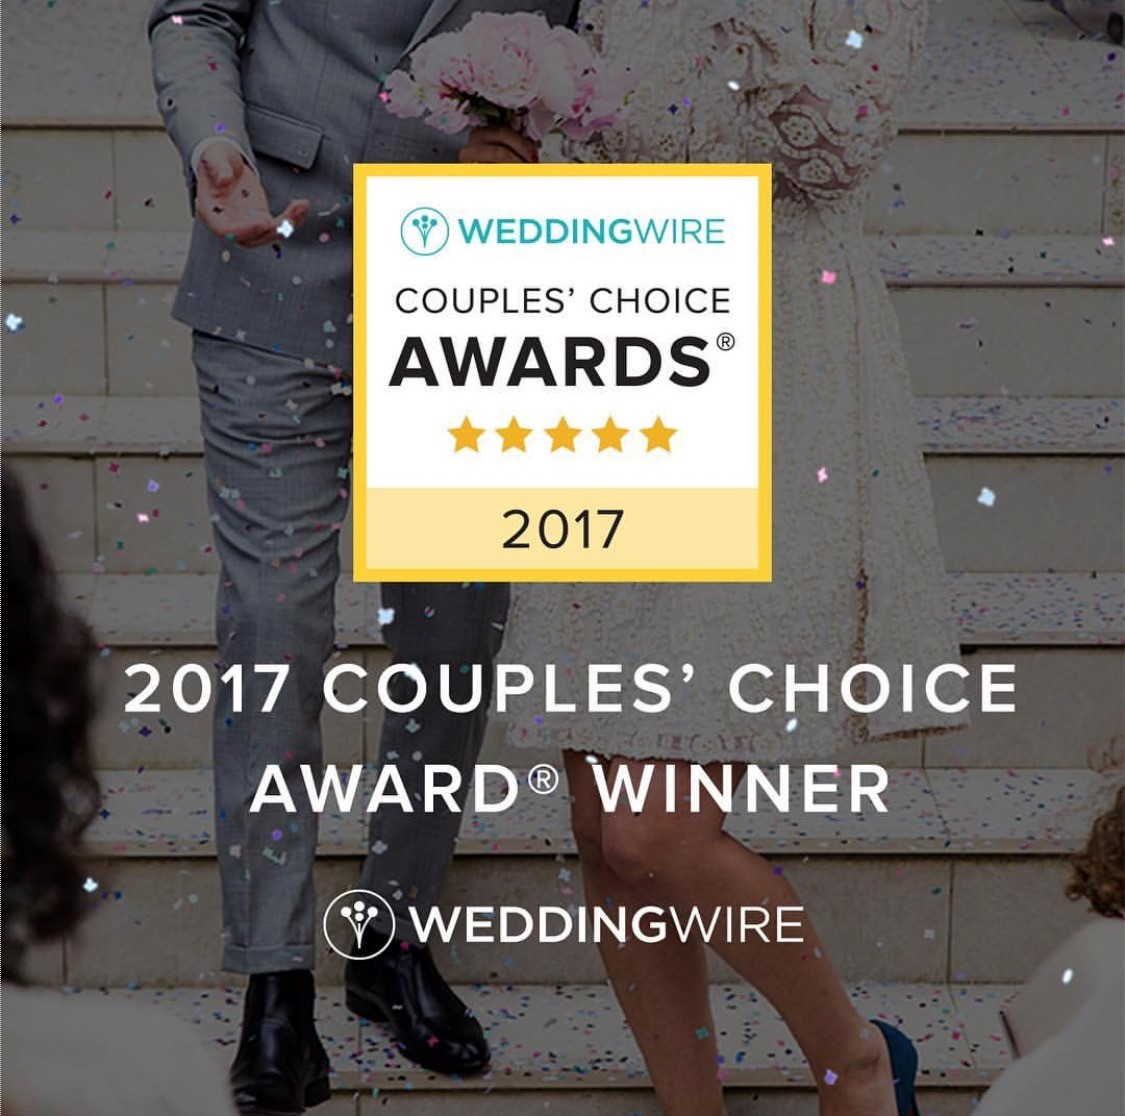 VOWS receives Weddingwire Award